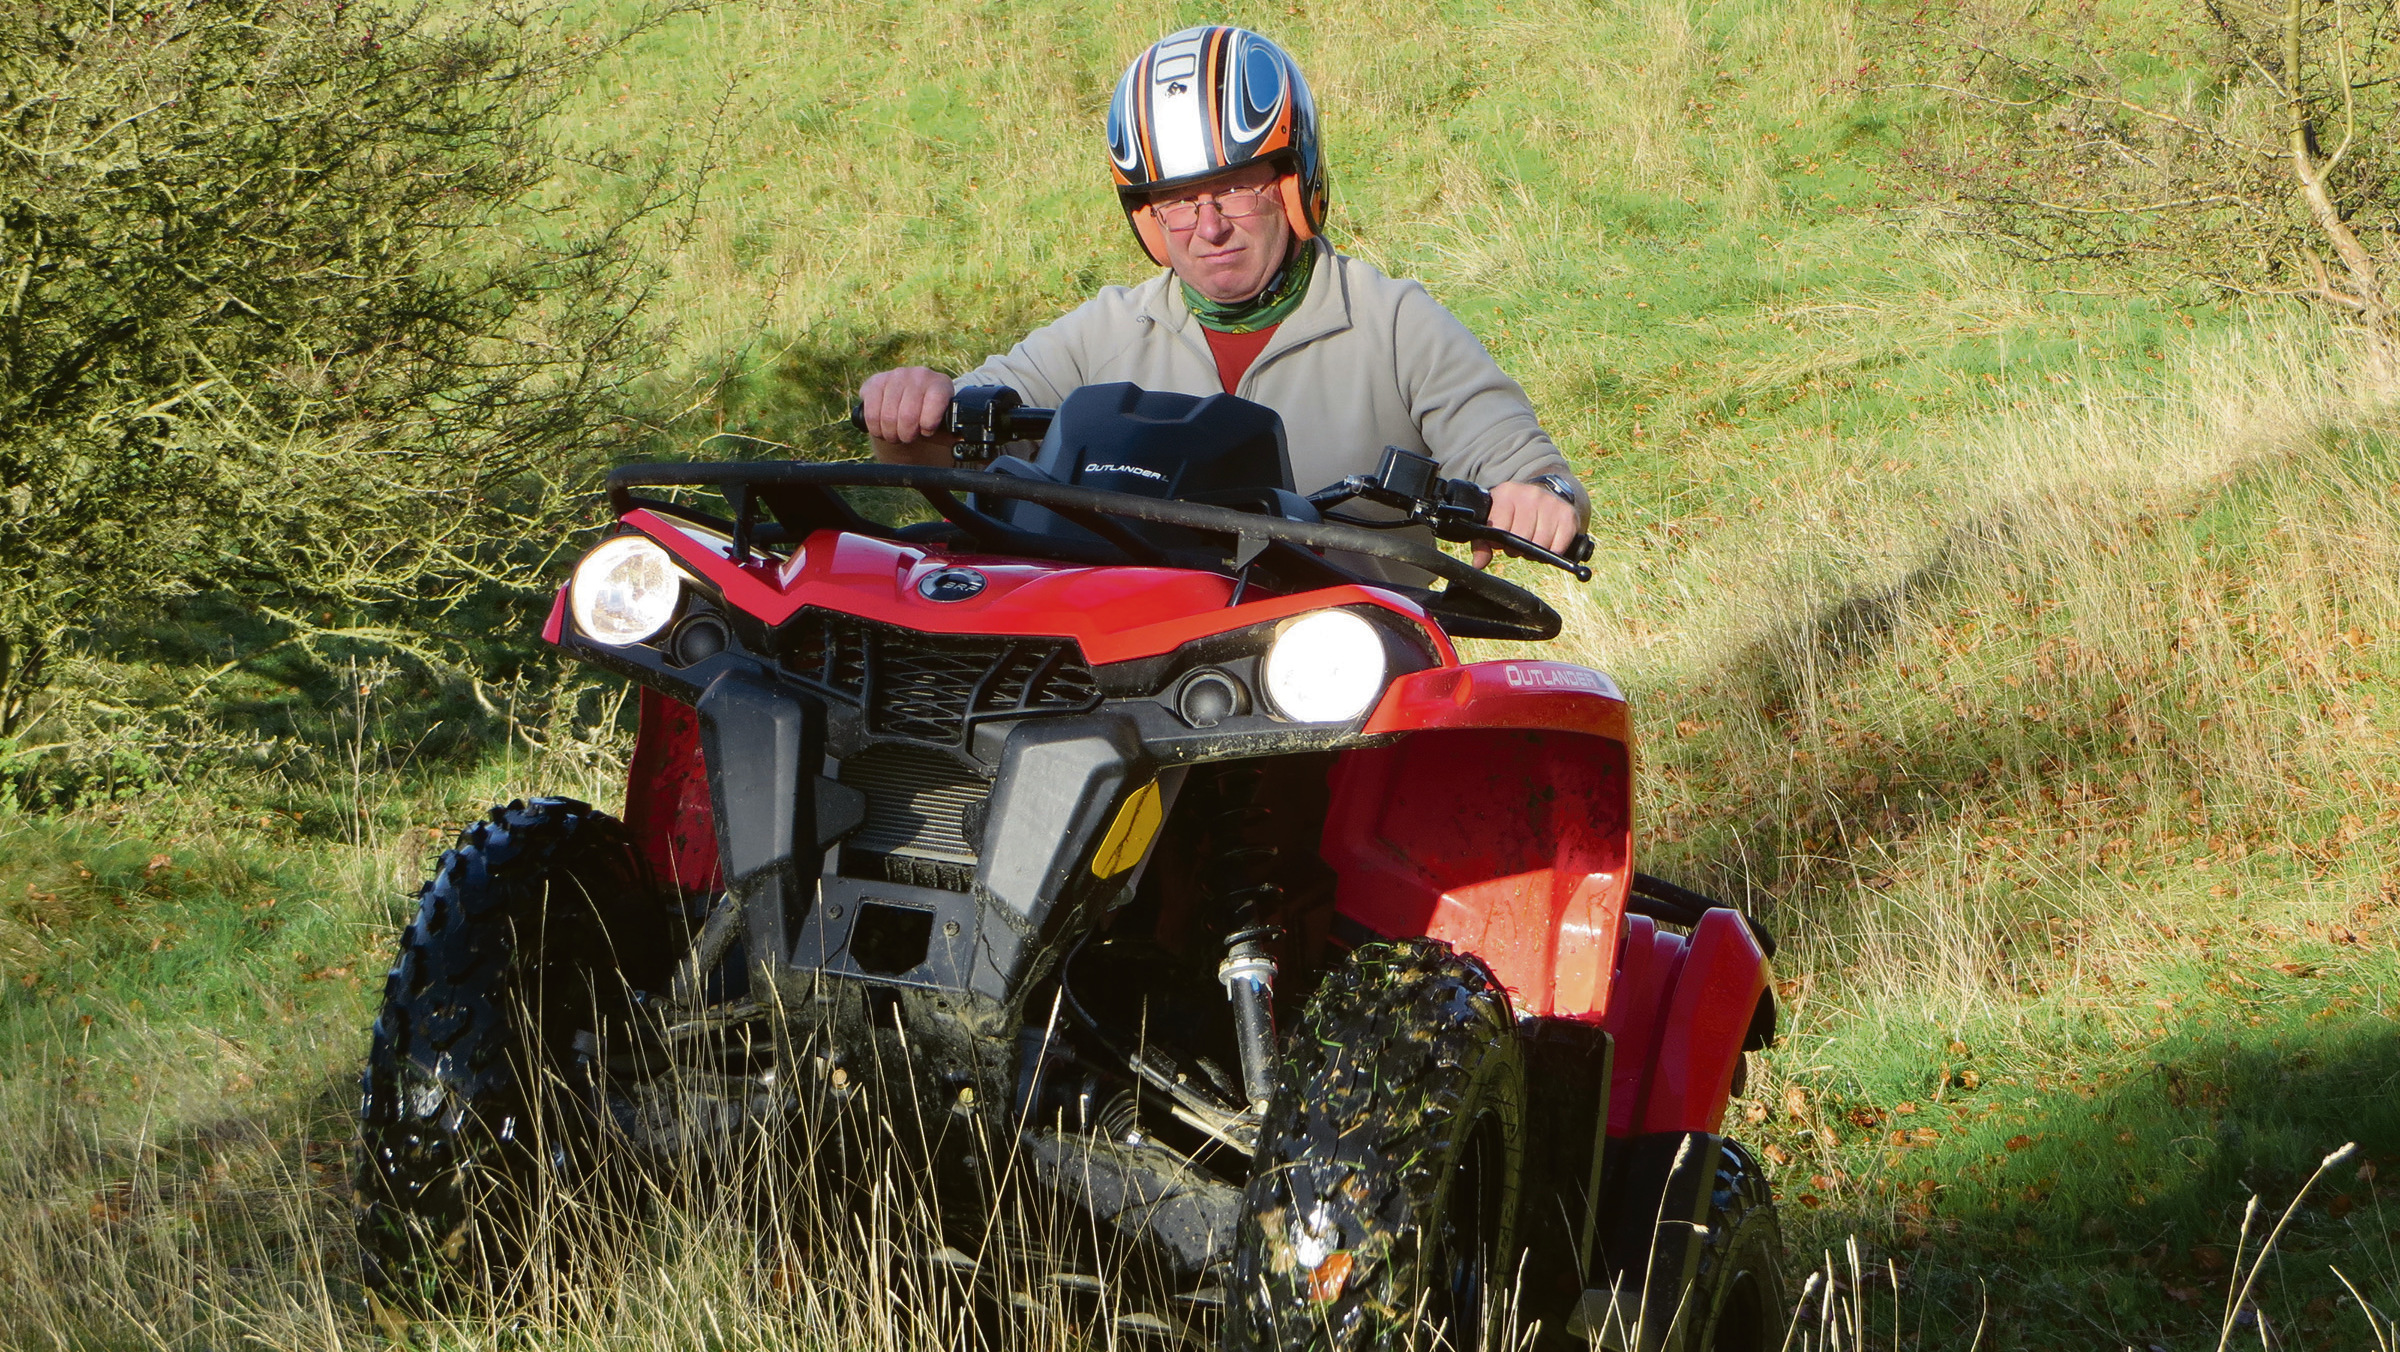 On test: BRP's Two new utility quad bikes